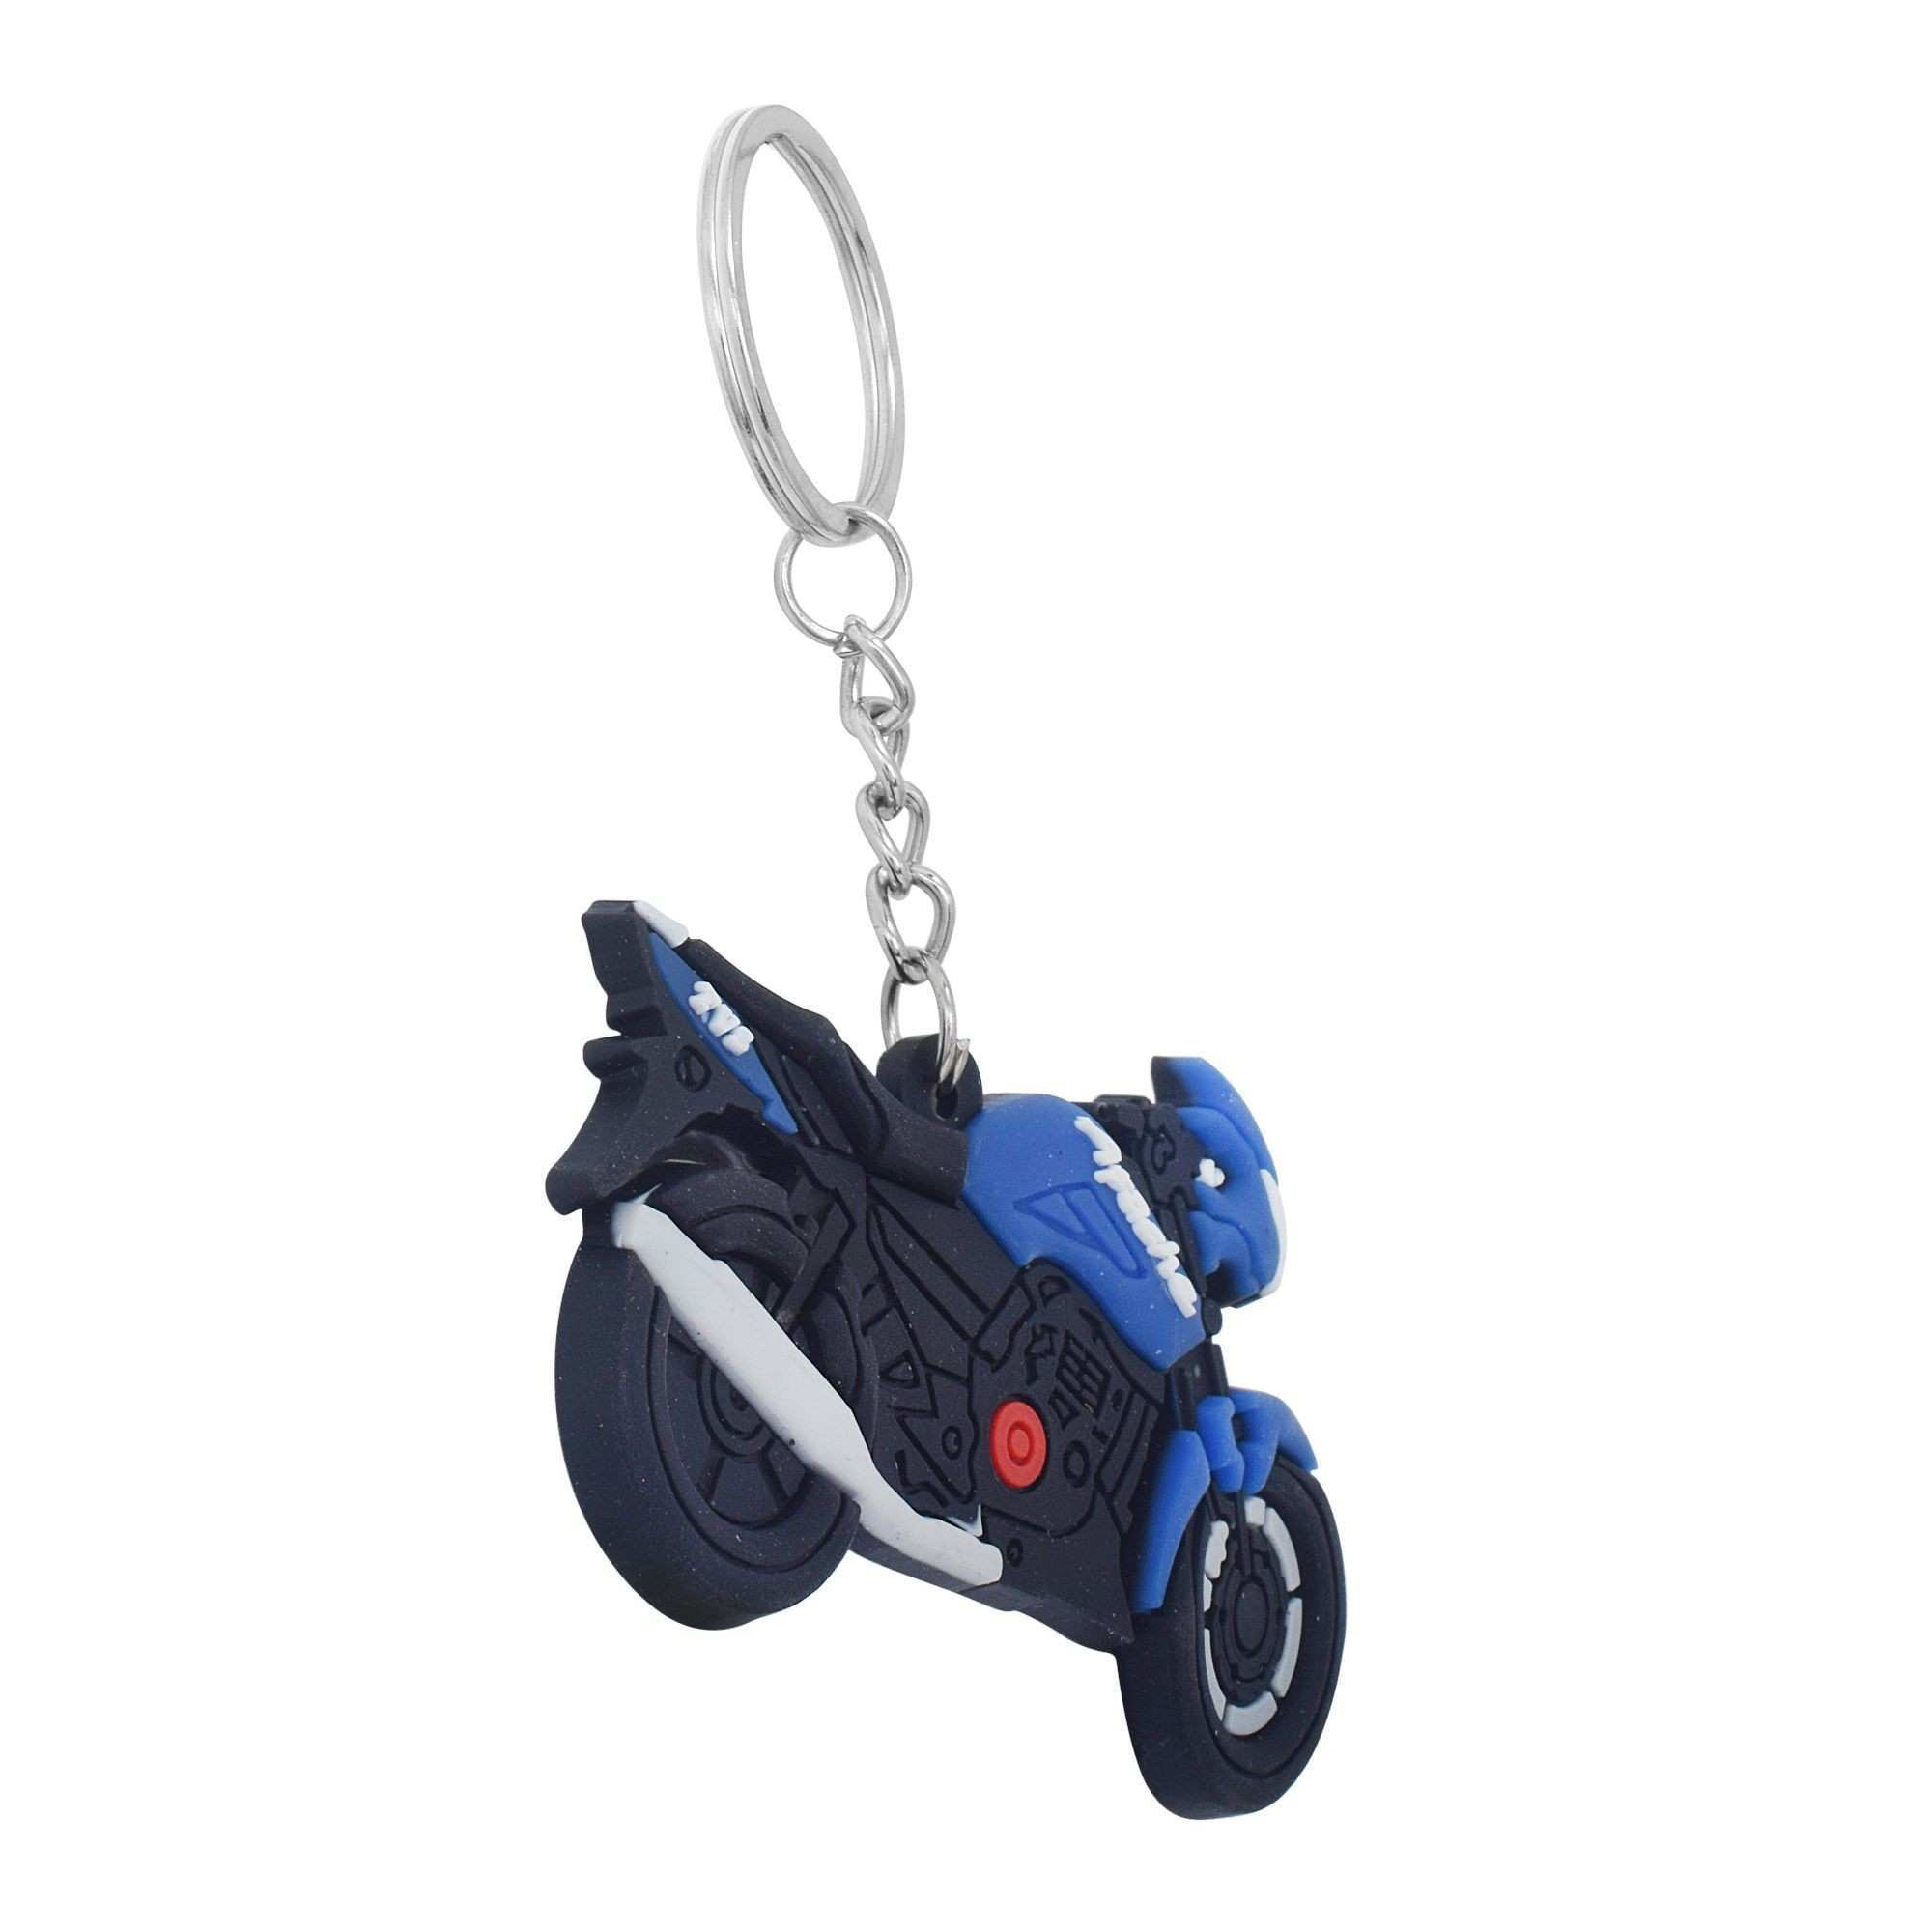 Dzine Trendz PVC Black and Blue coloured TVS Apache Keyring Bike